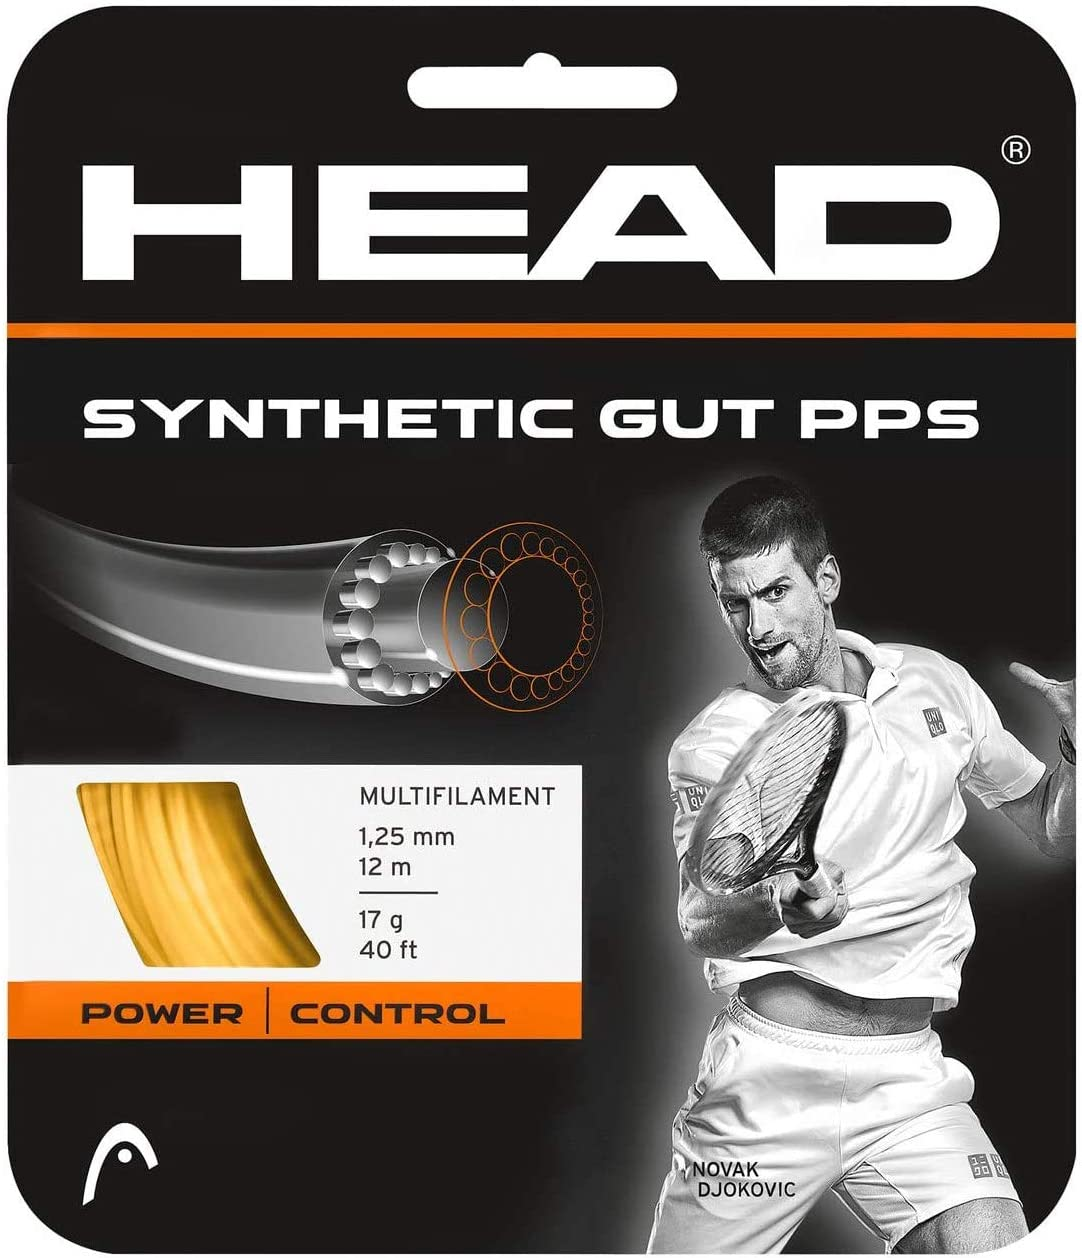 Head Synthetic Multifilament Tennis String review